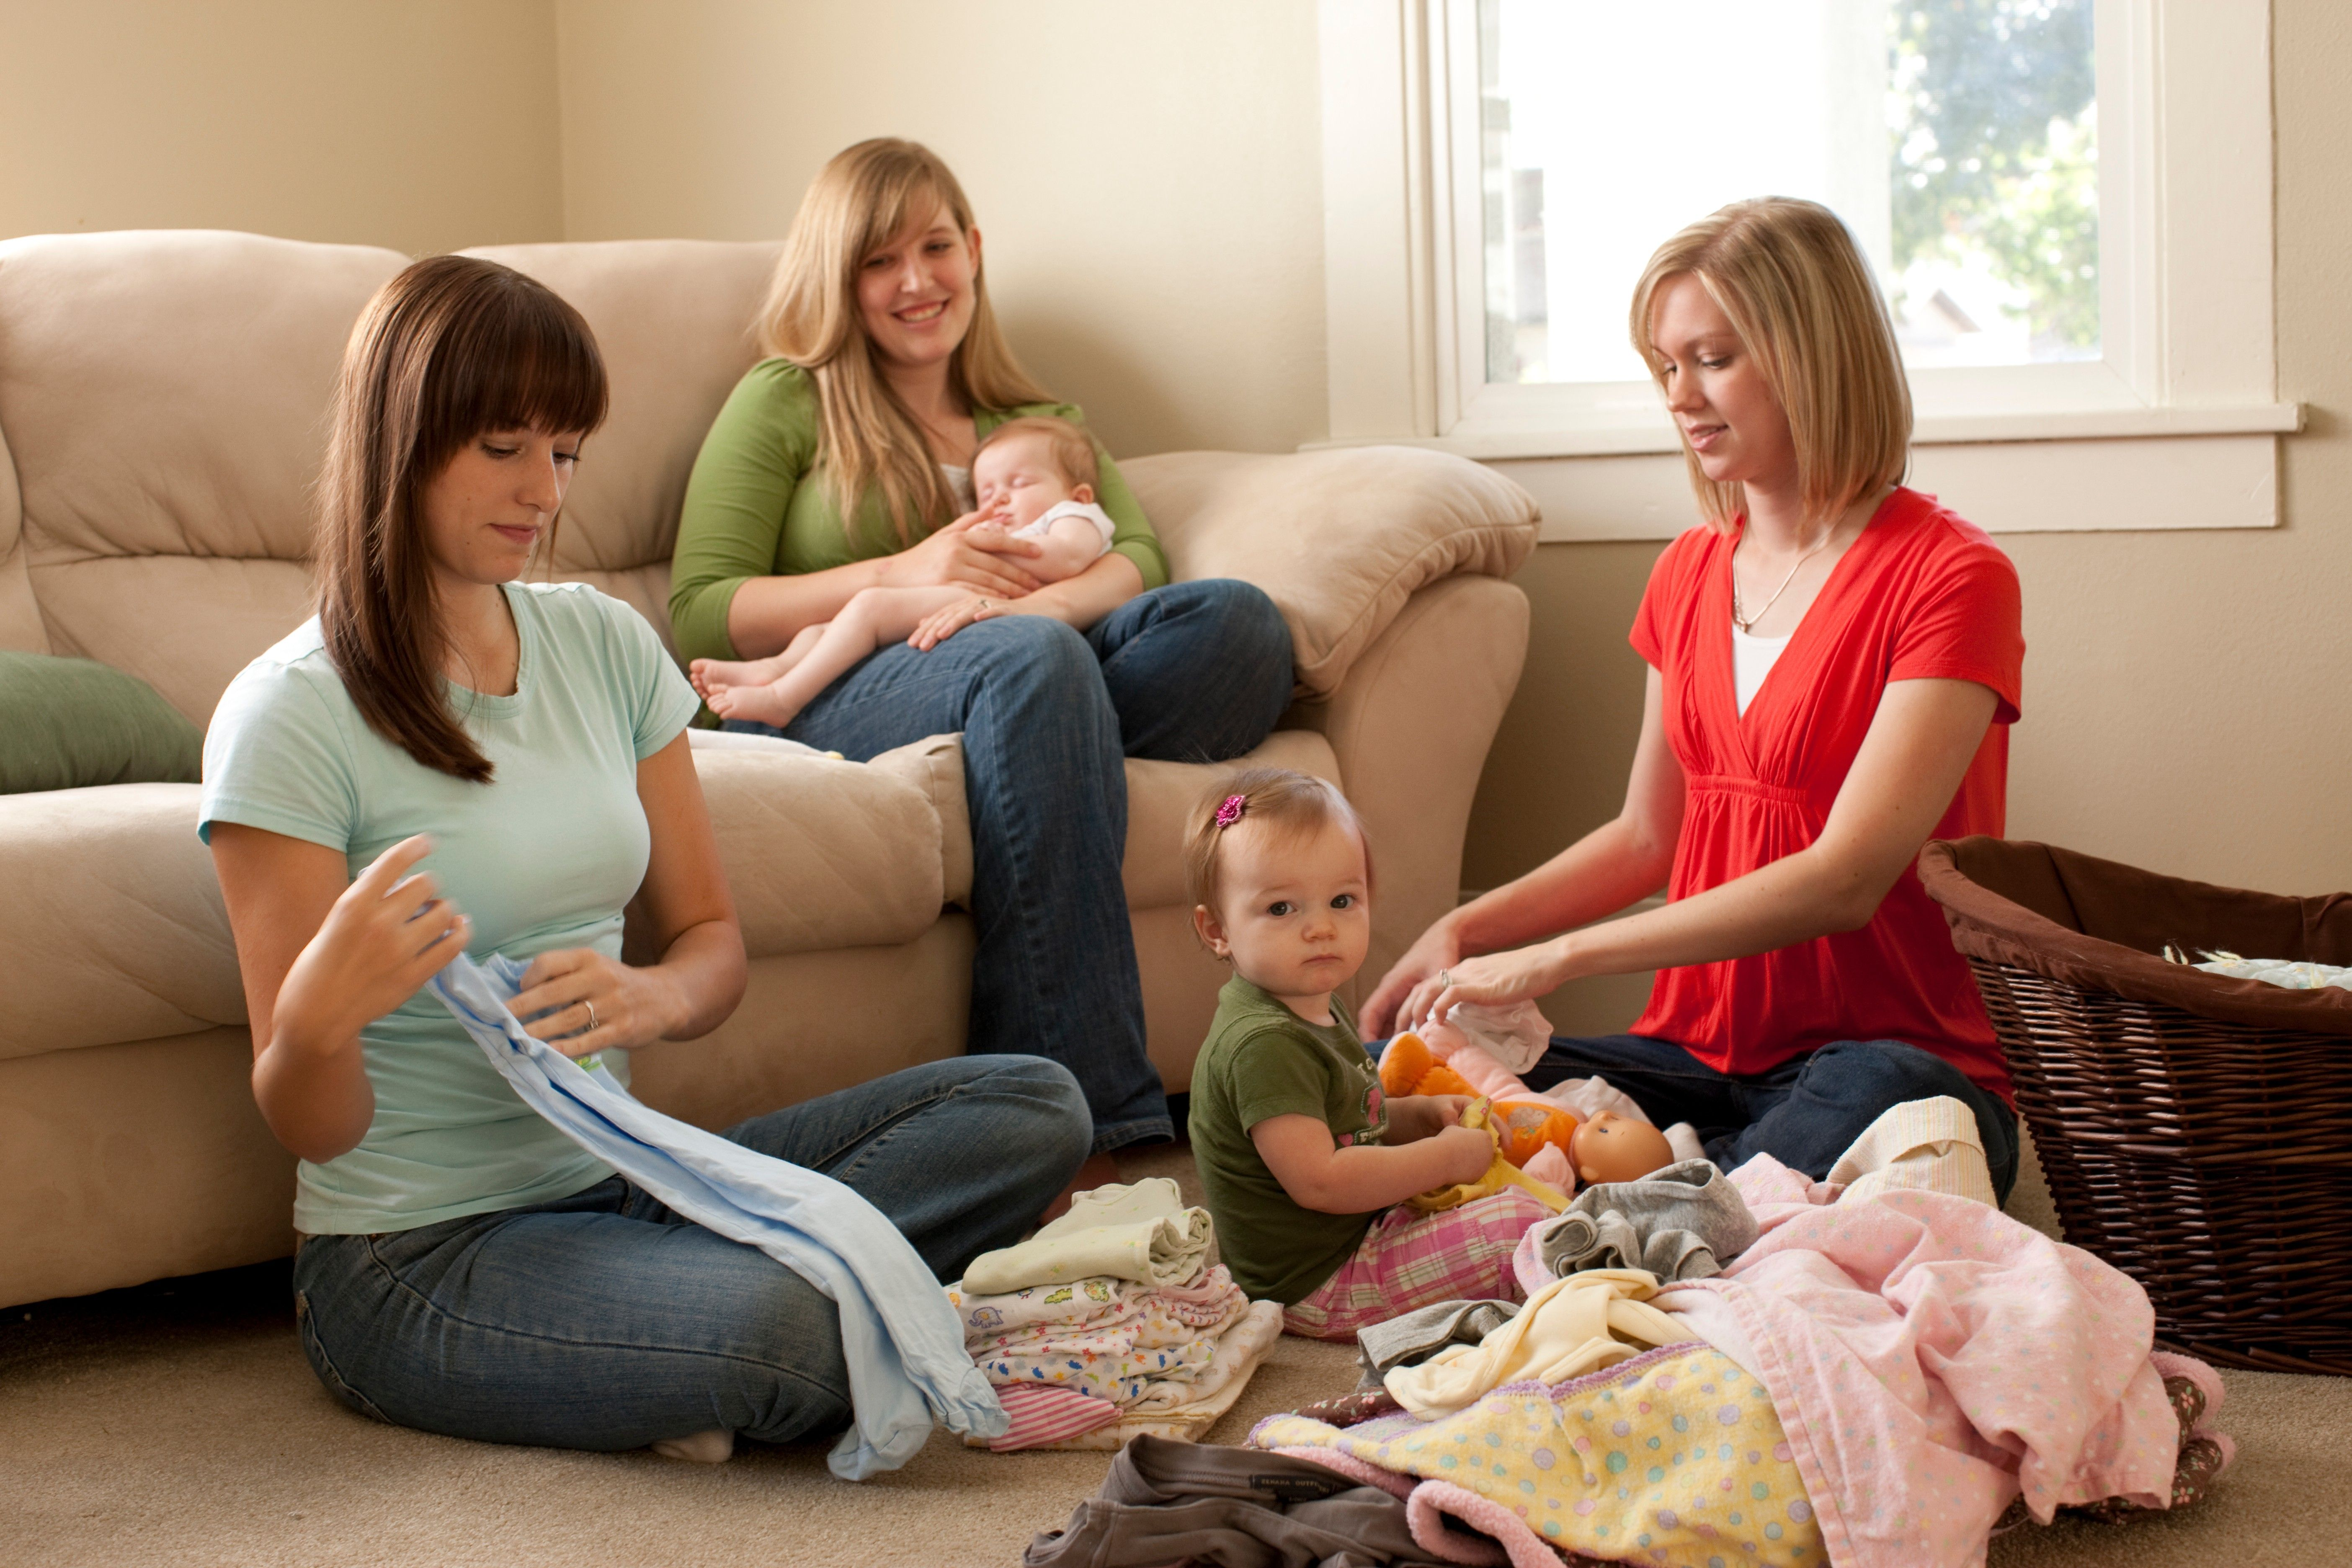 Ministering sisters help a woman with two children fold her laundry.